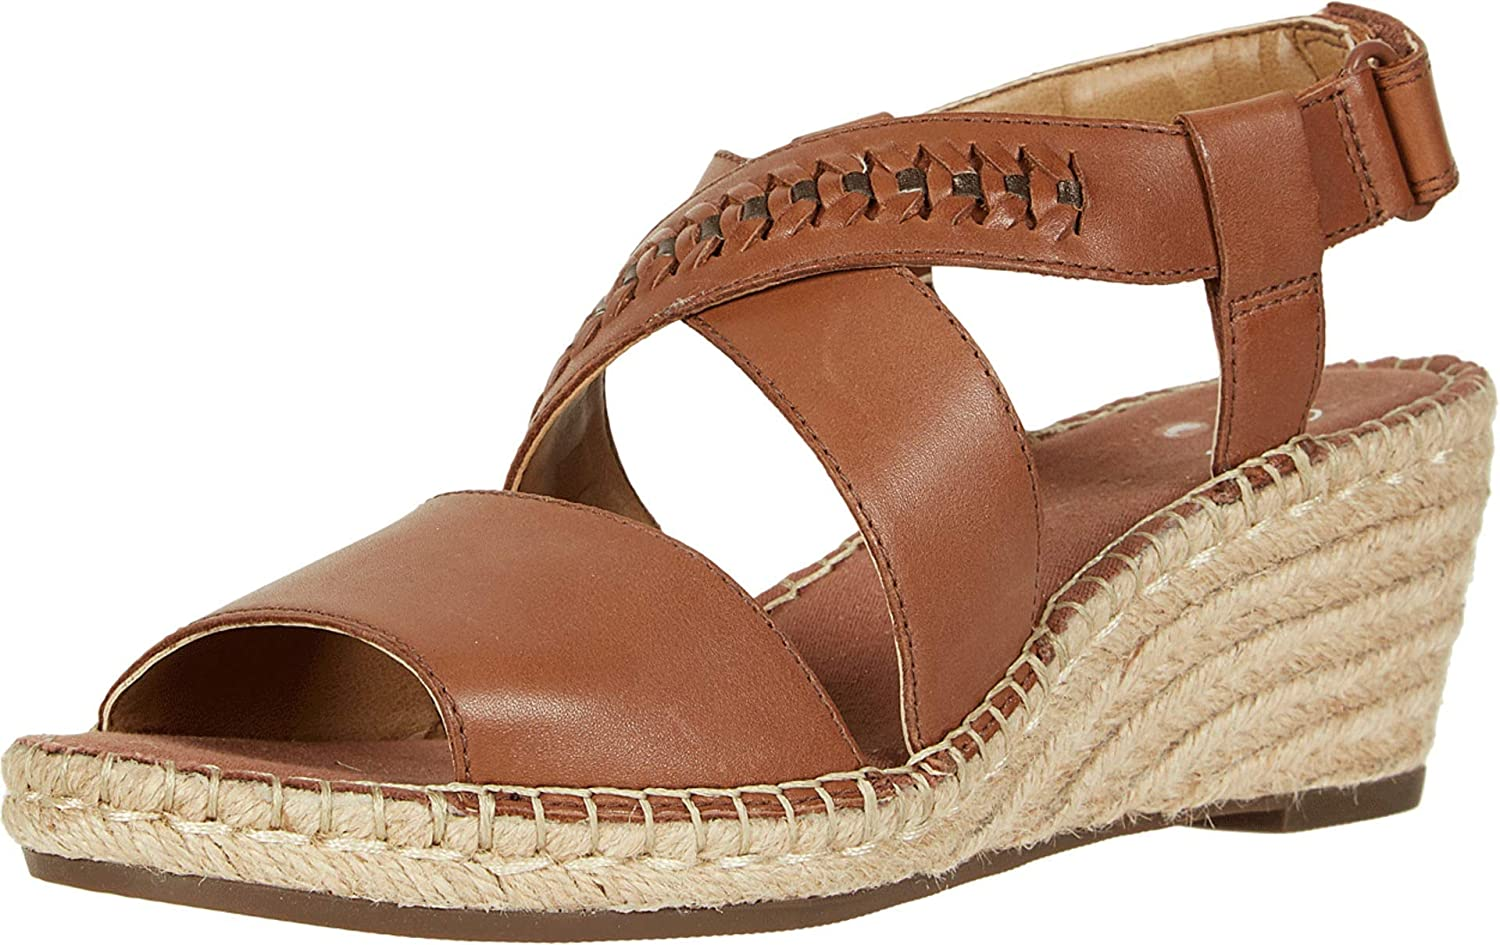 Clarks Women's Petrina New product Sandal Sales results No. 1 Bay Wedge